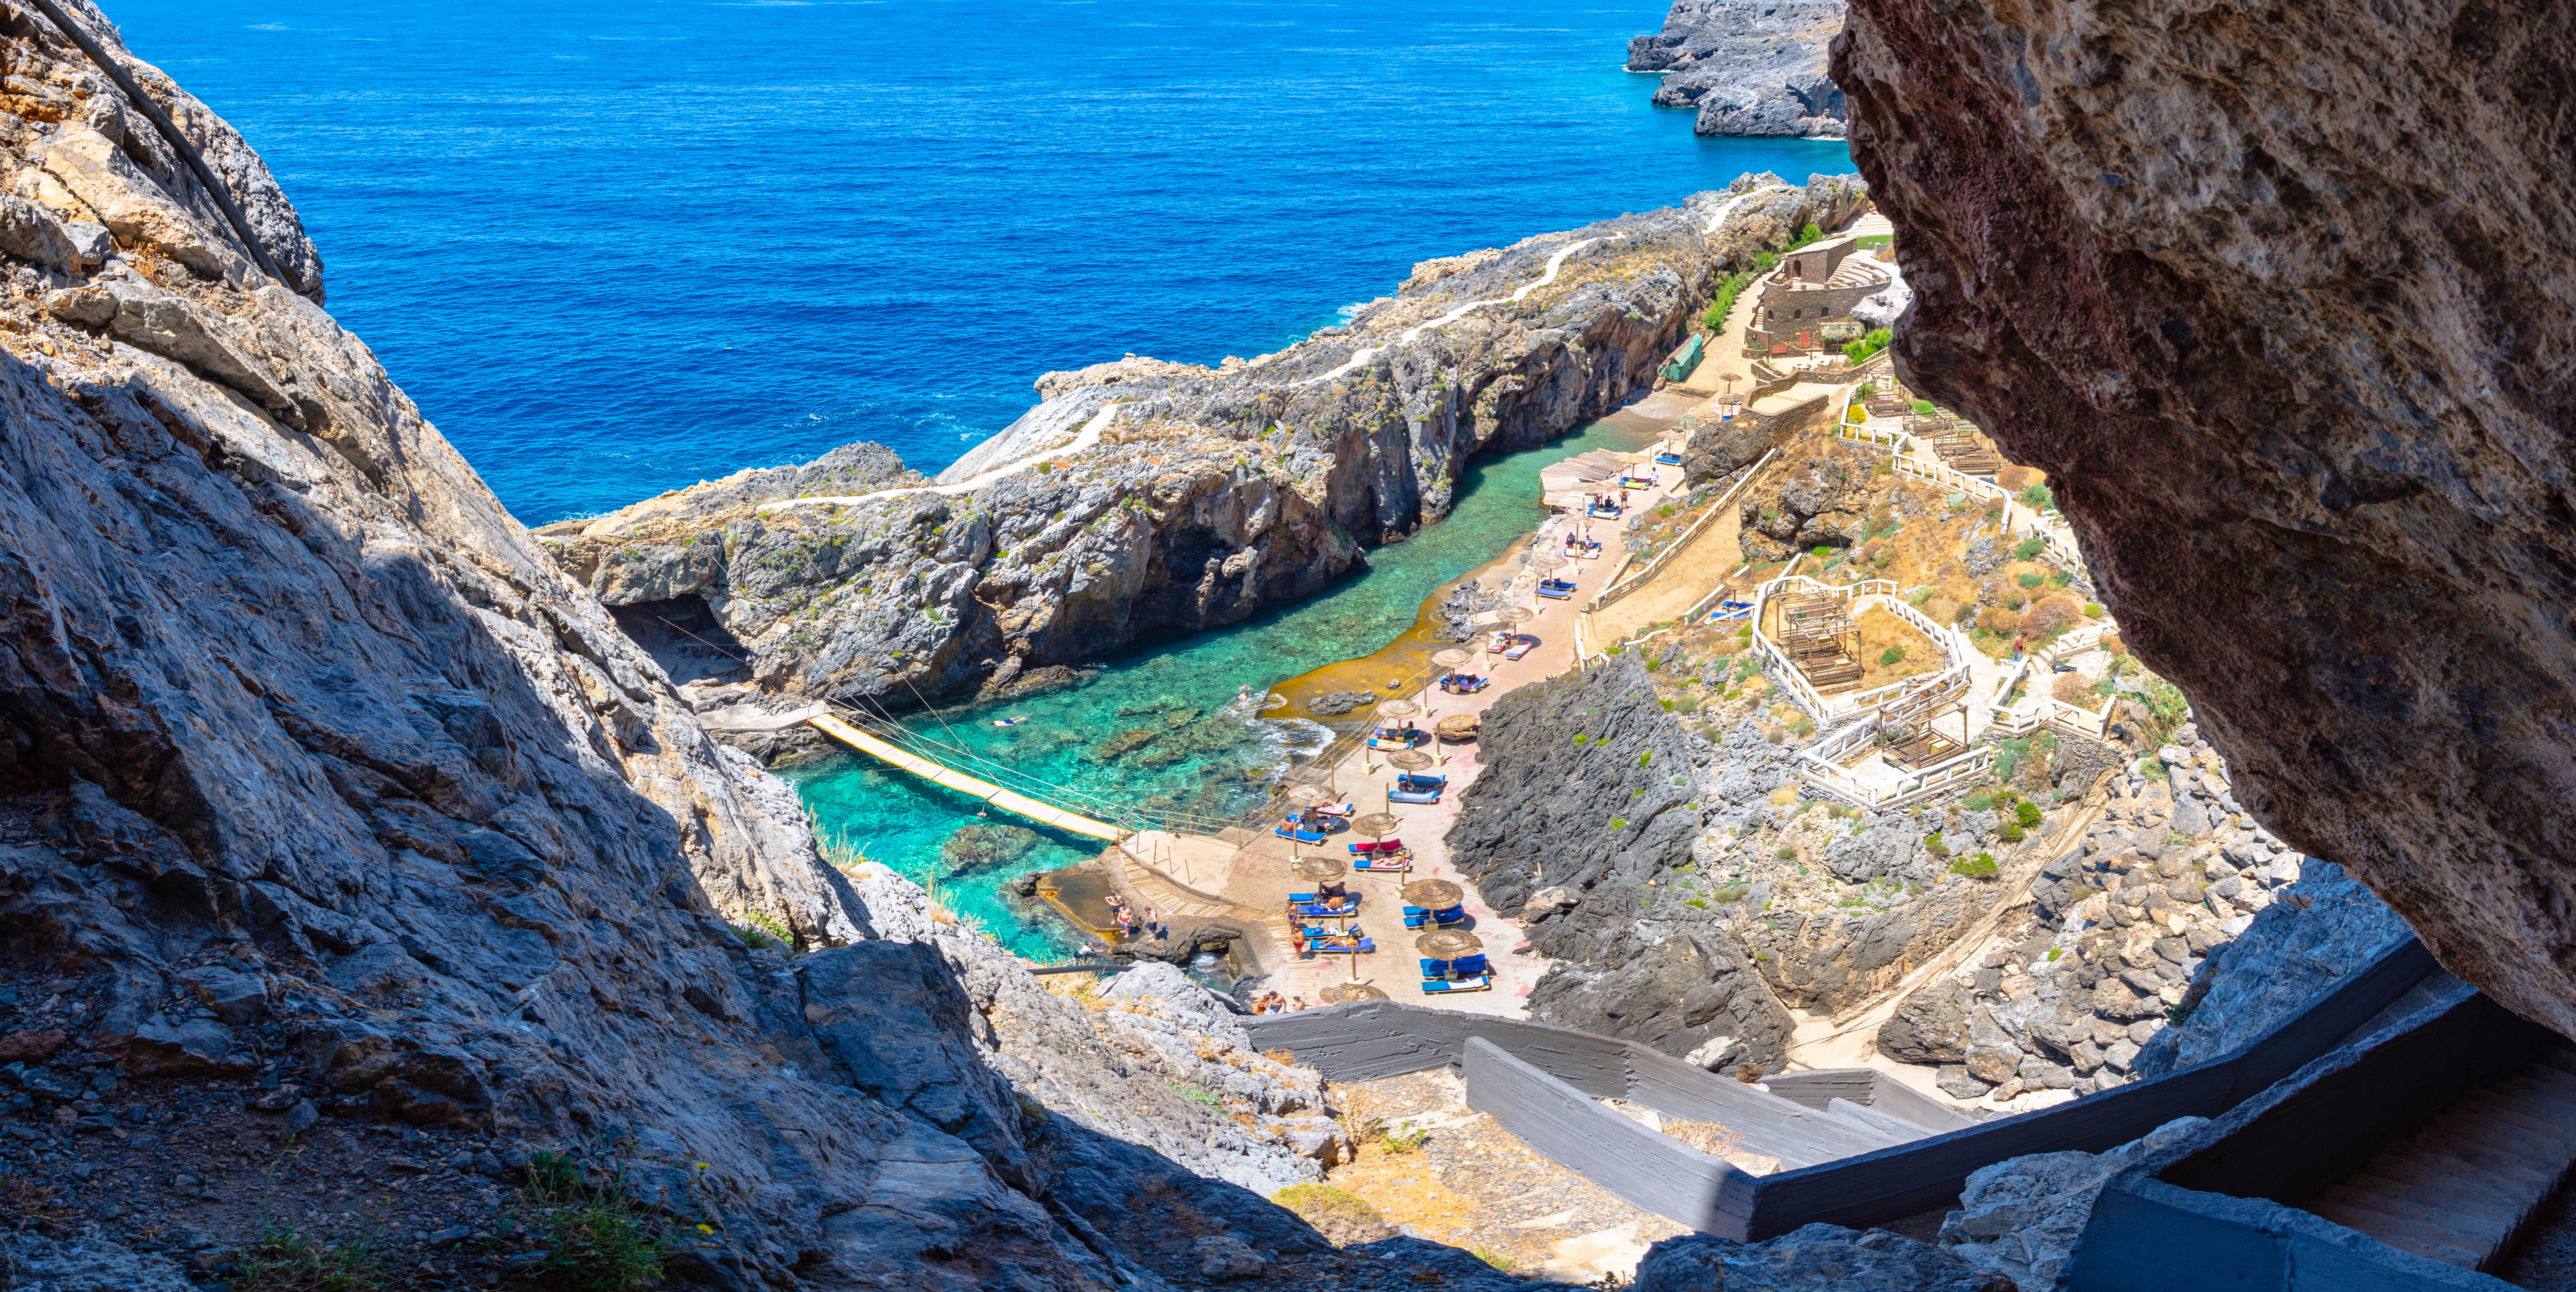 """Crete: The fjord that """"enchanted"""" Odysseus who stayed there for 7 years"""